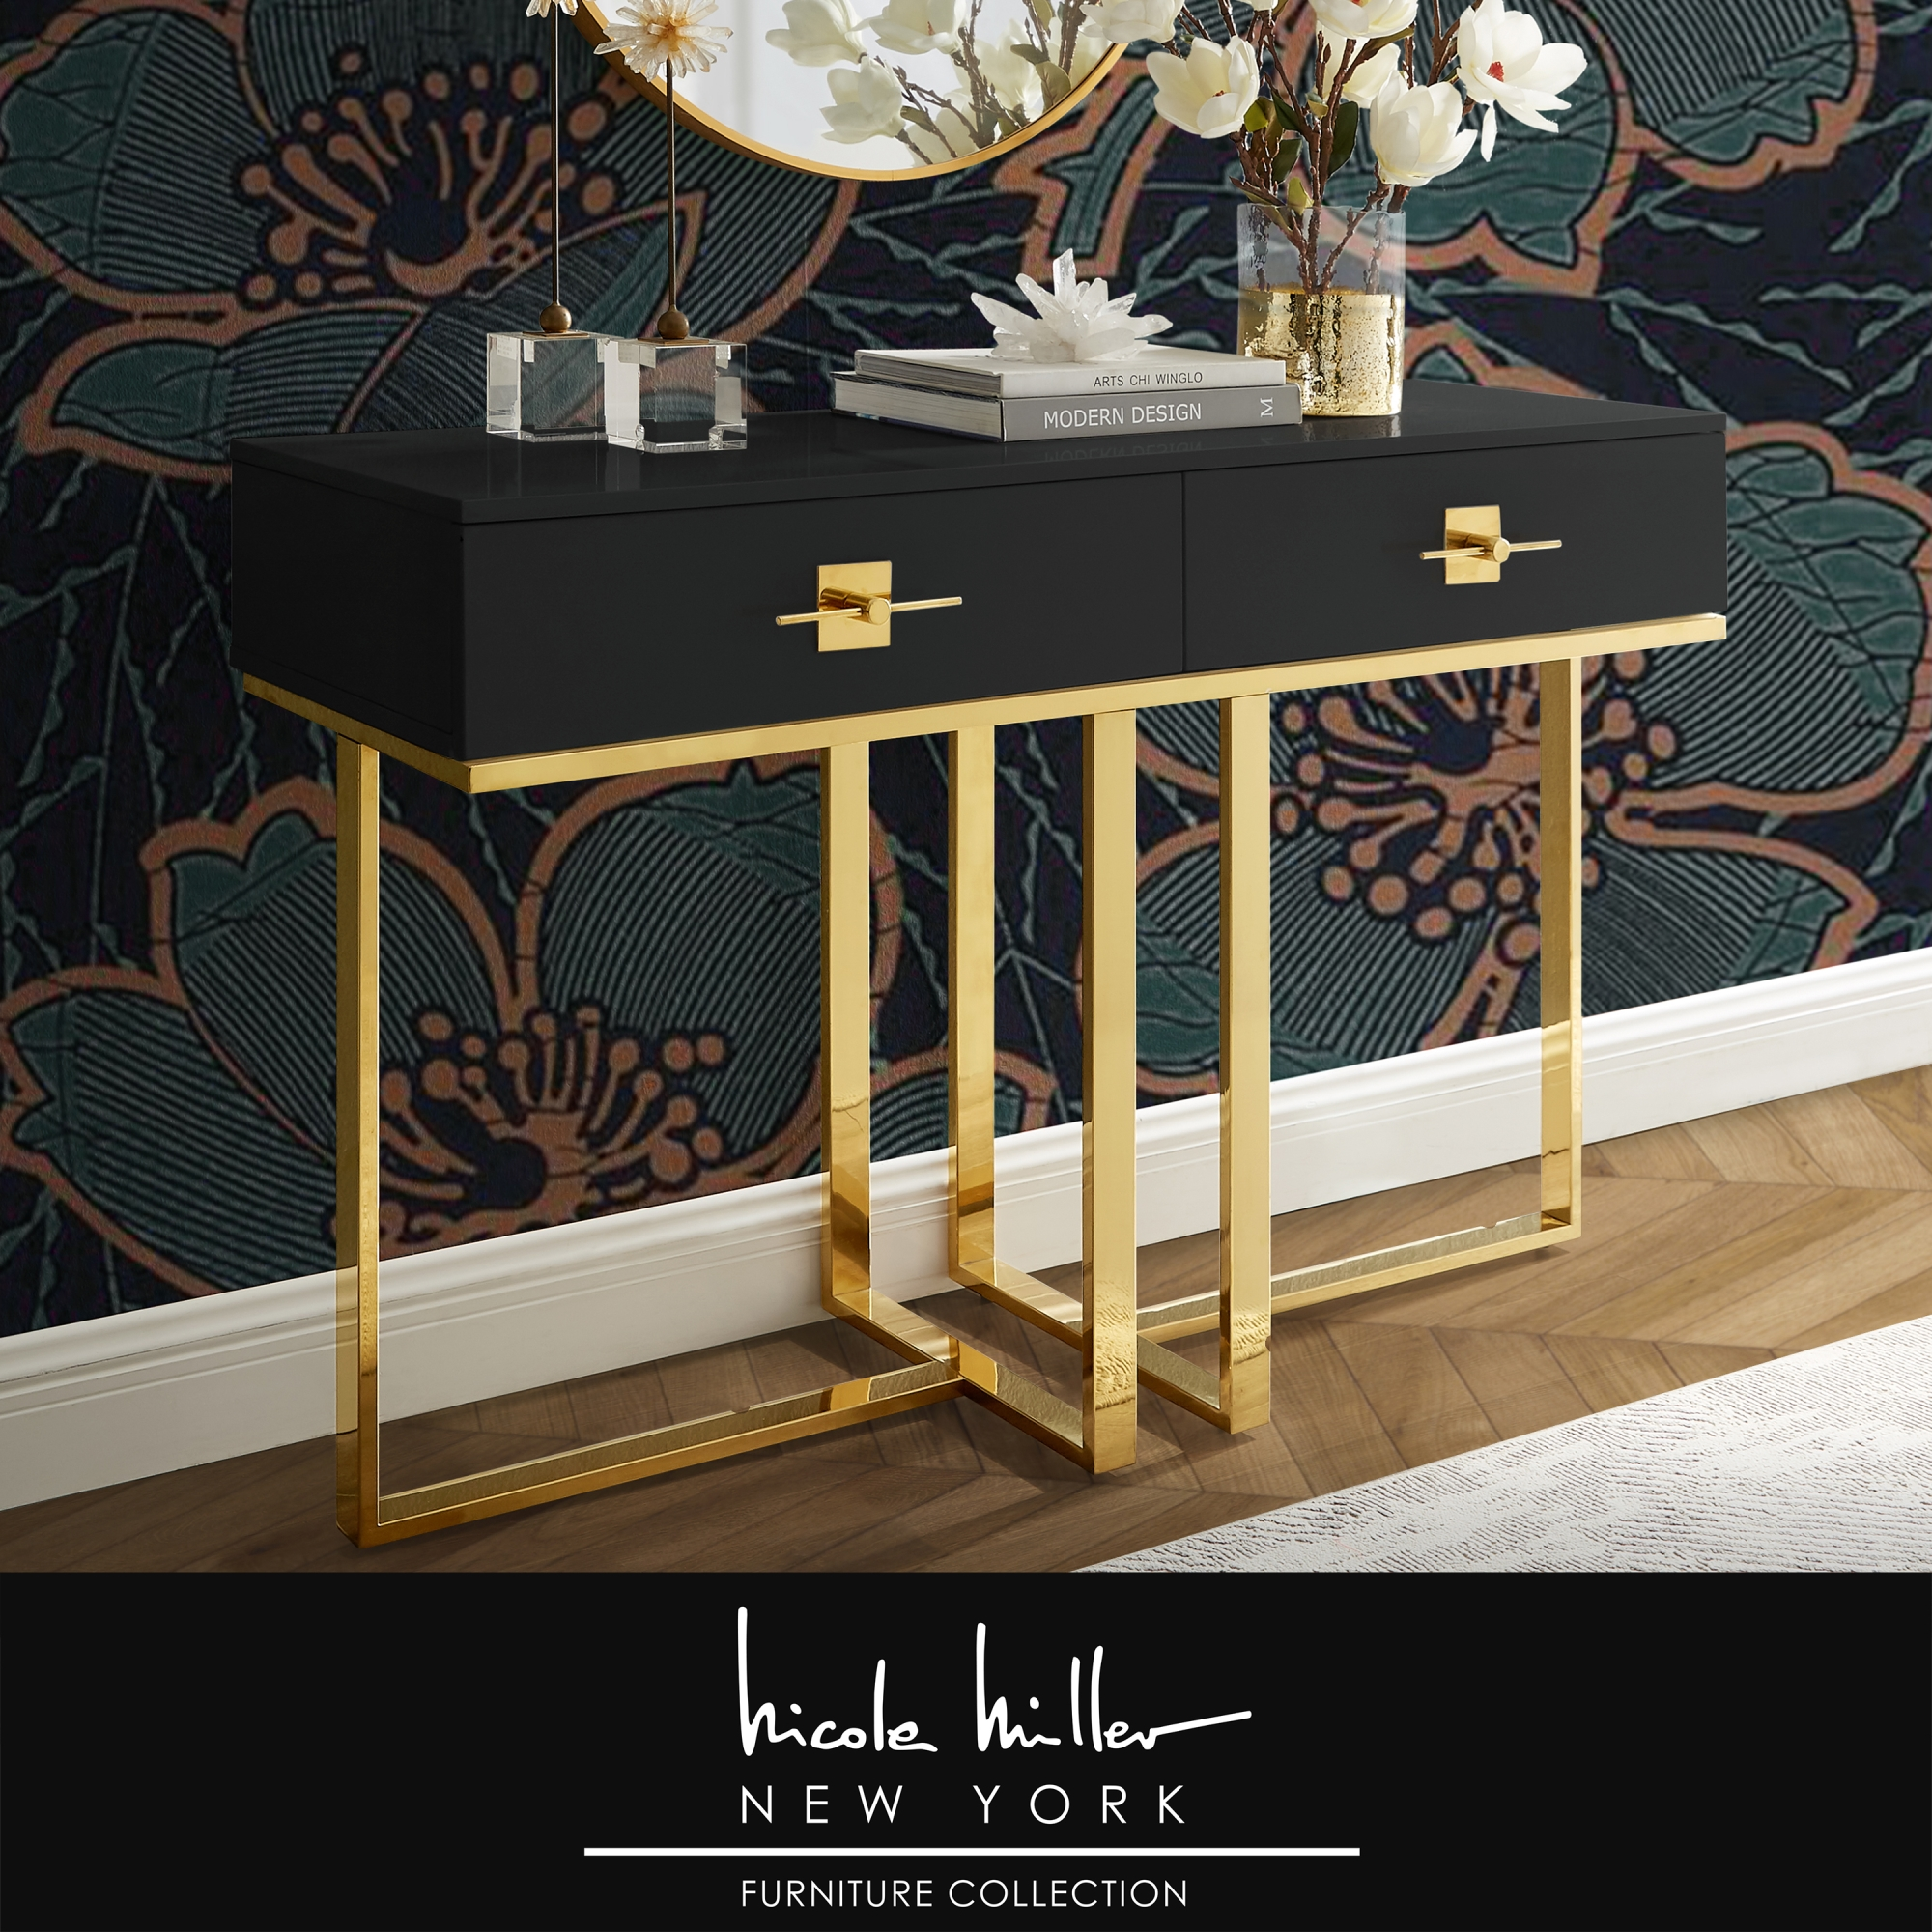 Nicole Miller Black/Gold Console Table 2 Drawers Hight Gloss Lacquer Finish